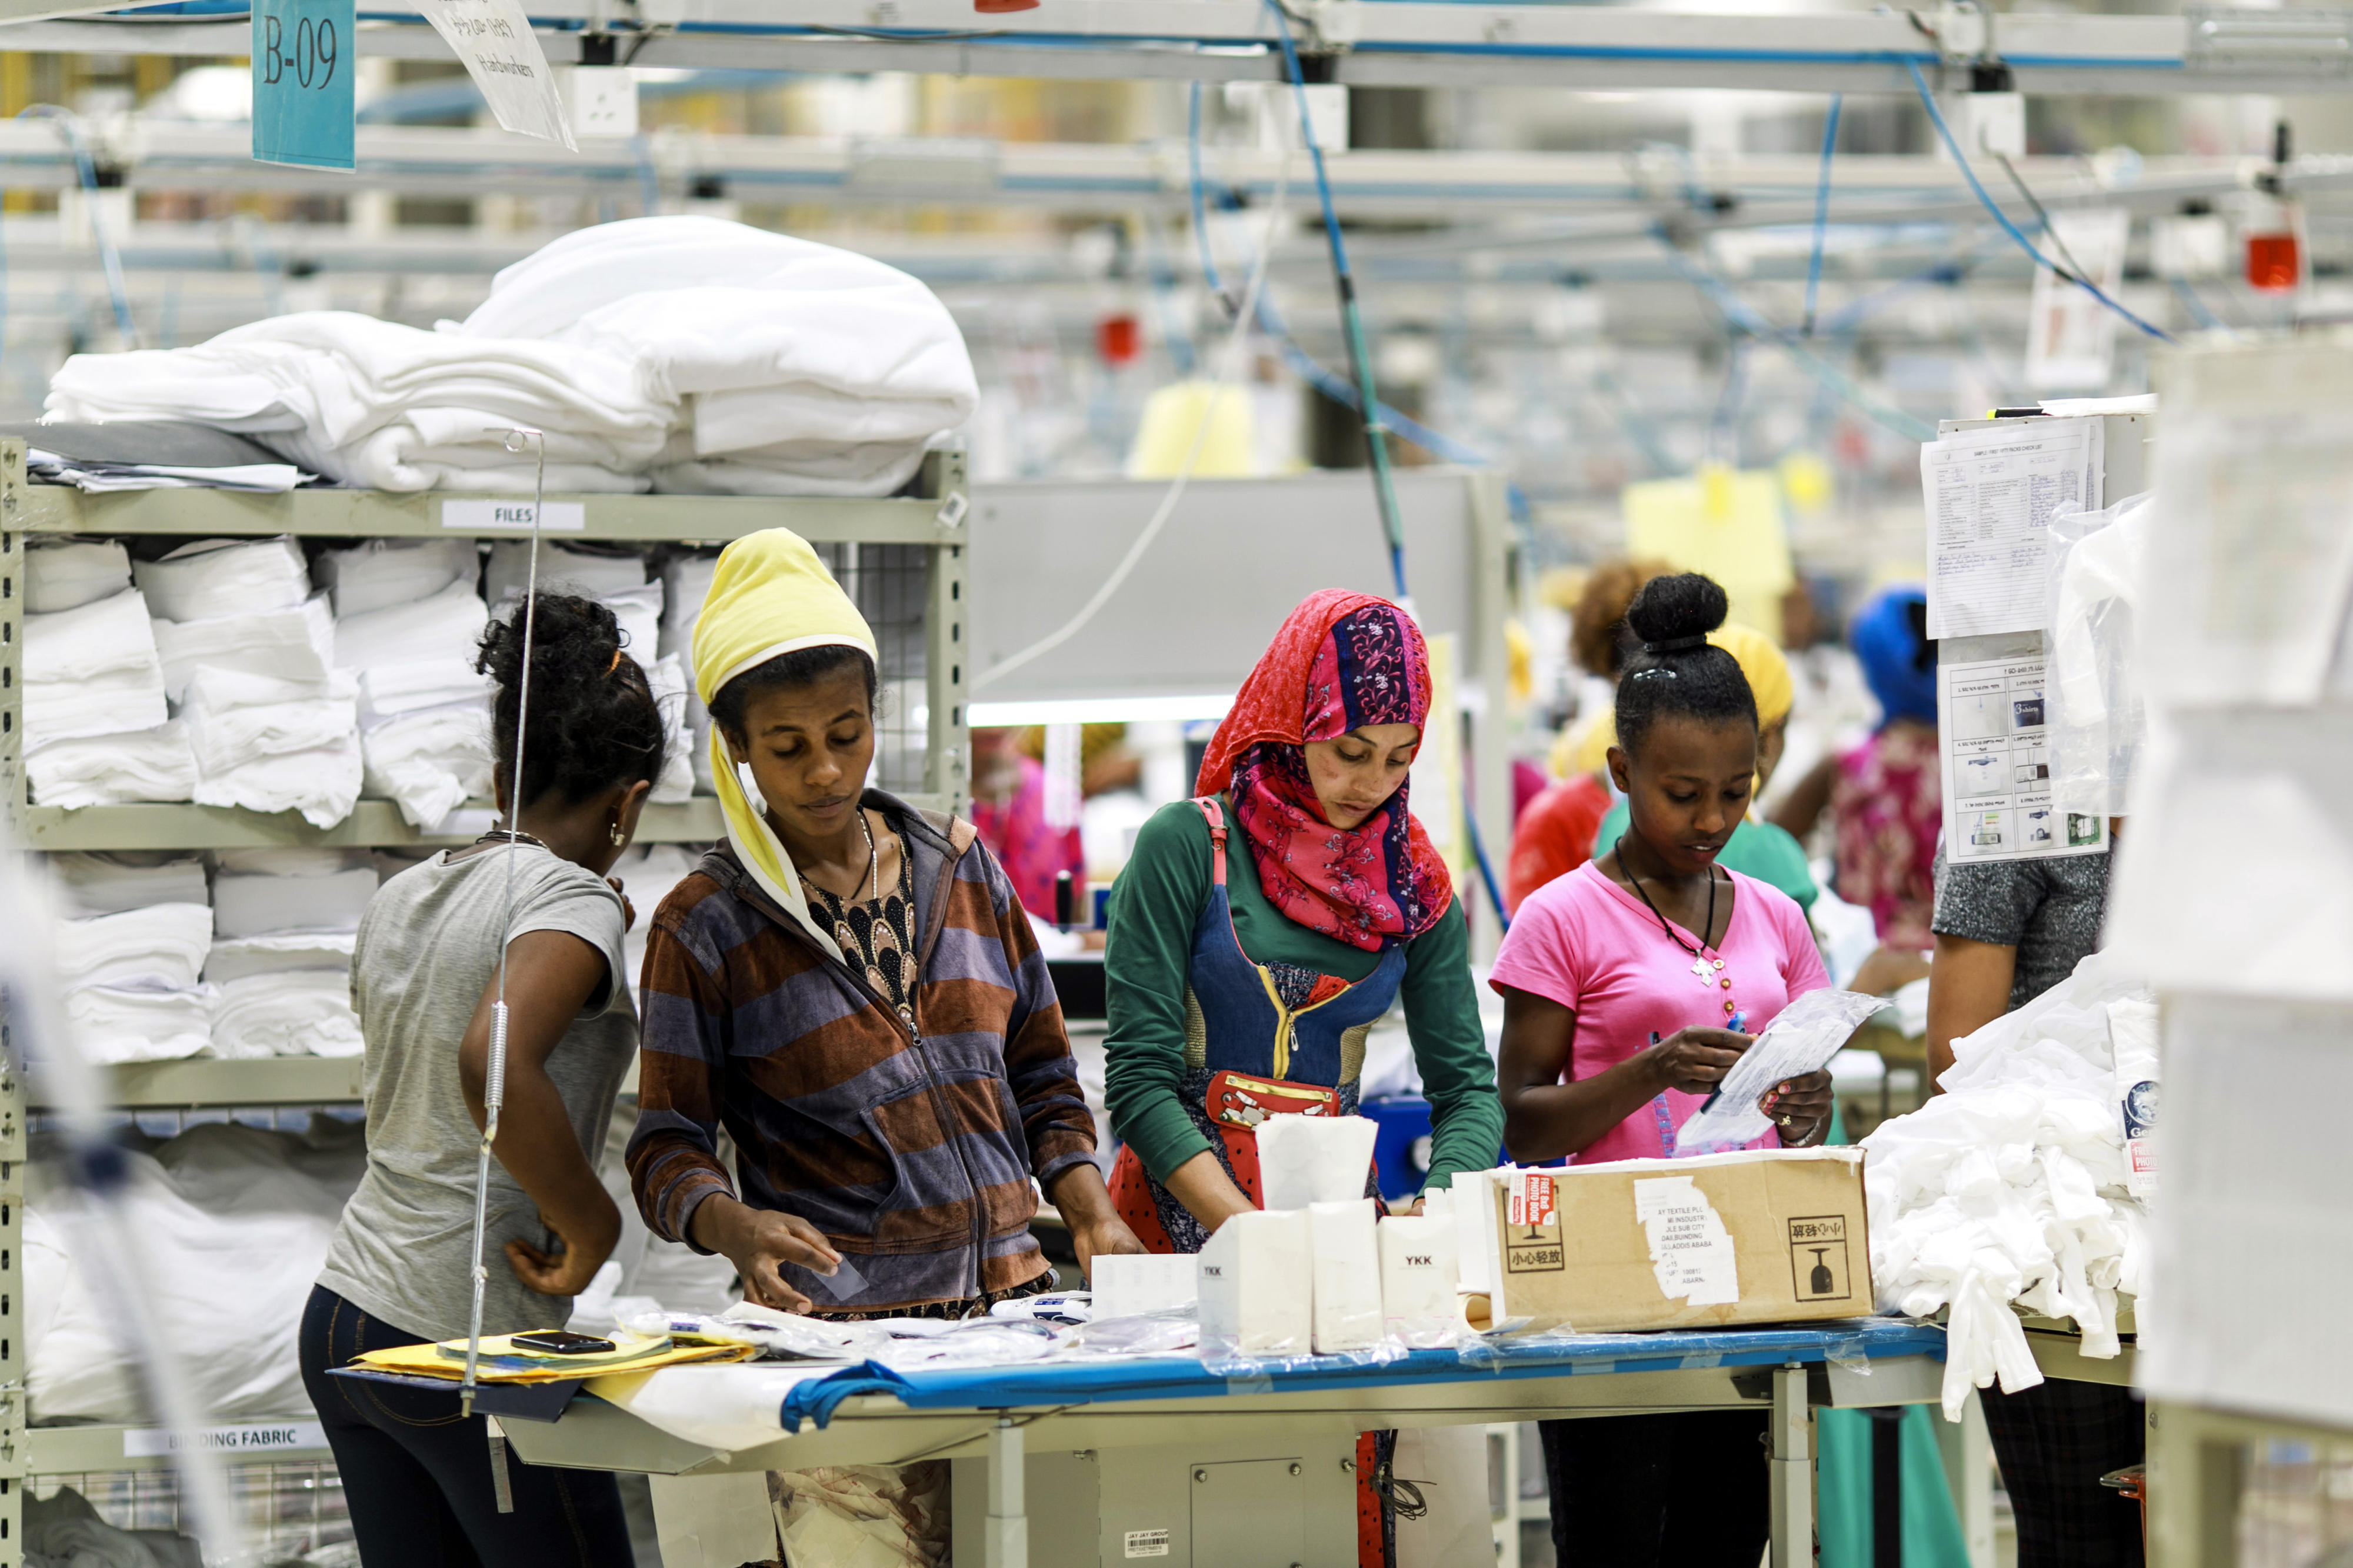 Workers in a textile factory in Ethiopia, producing for a chain of shops that is widespread in Germany